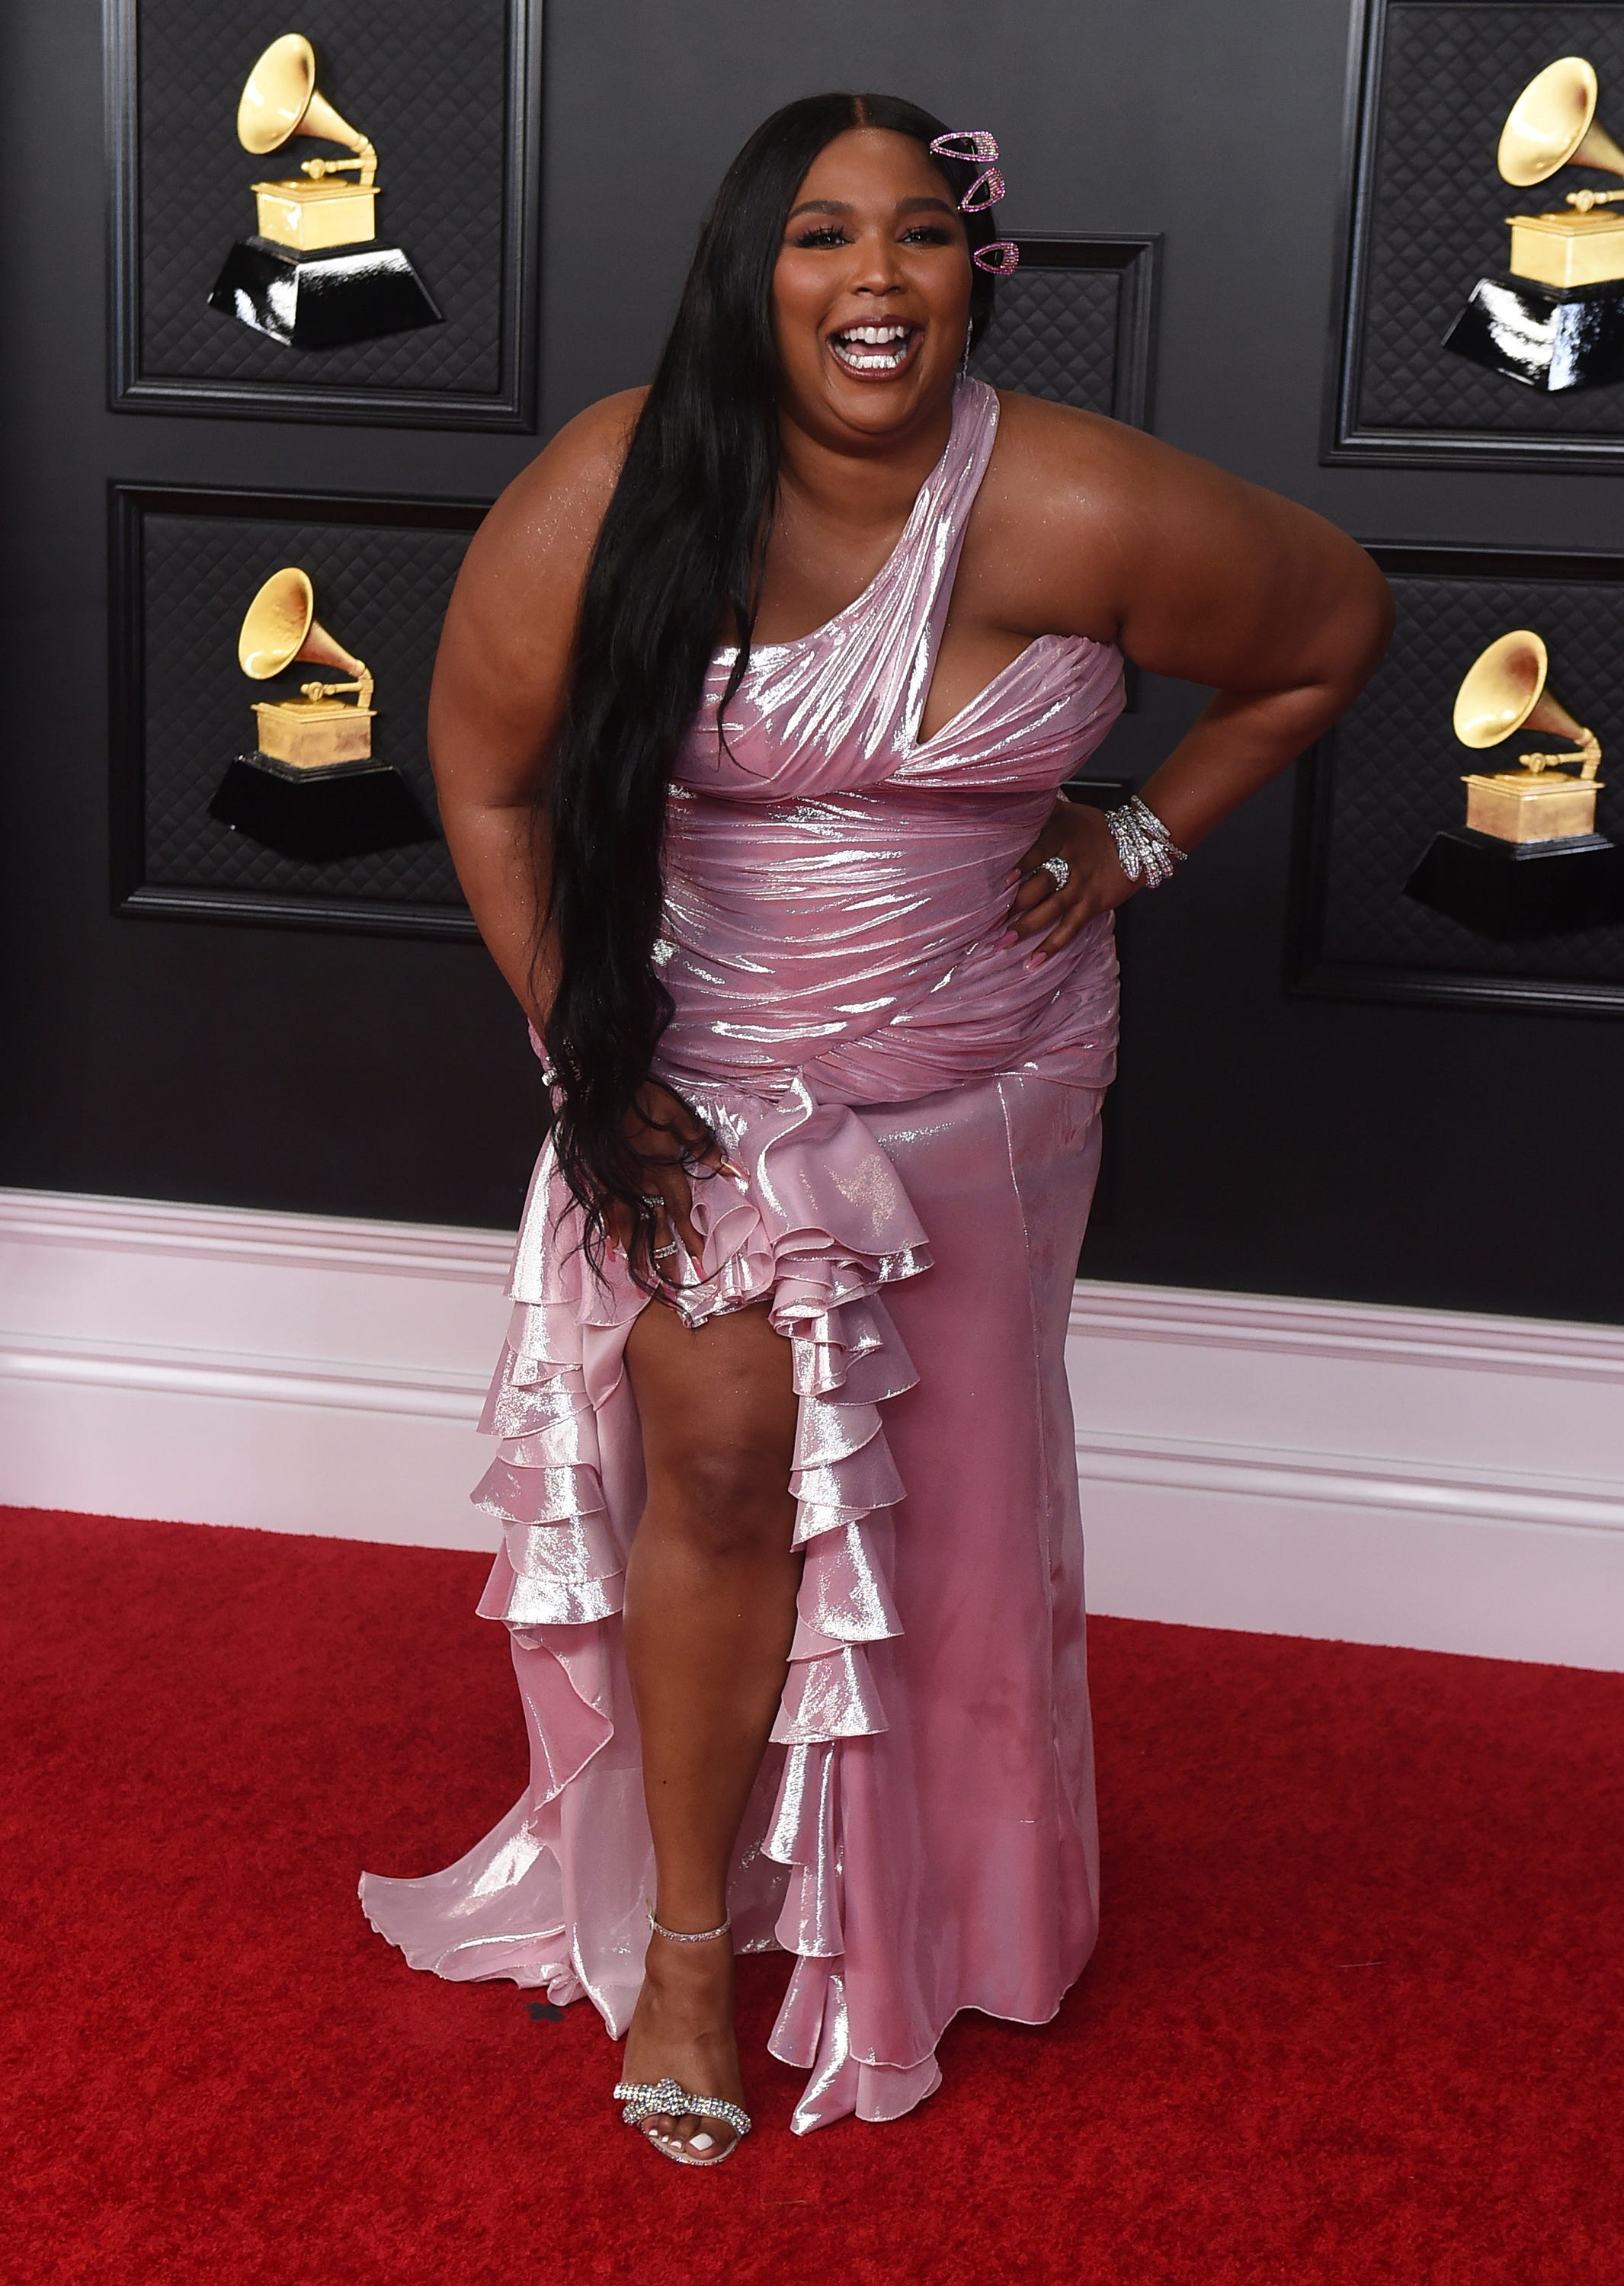 Celebrities who have been open about body image struggles, from Lizzo to Demi Lovato